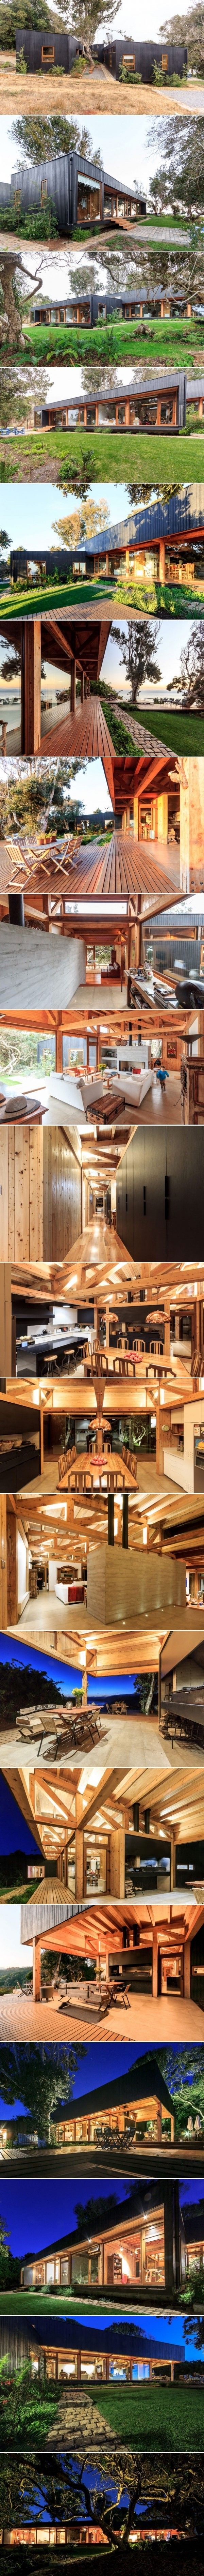 Projects of a 10x10 timber house: highlights, technology of erection and material advantages